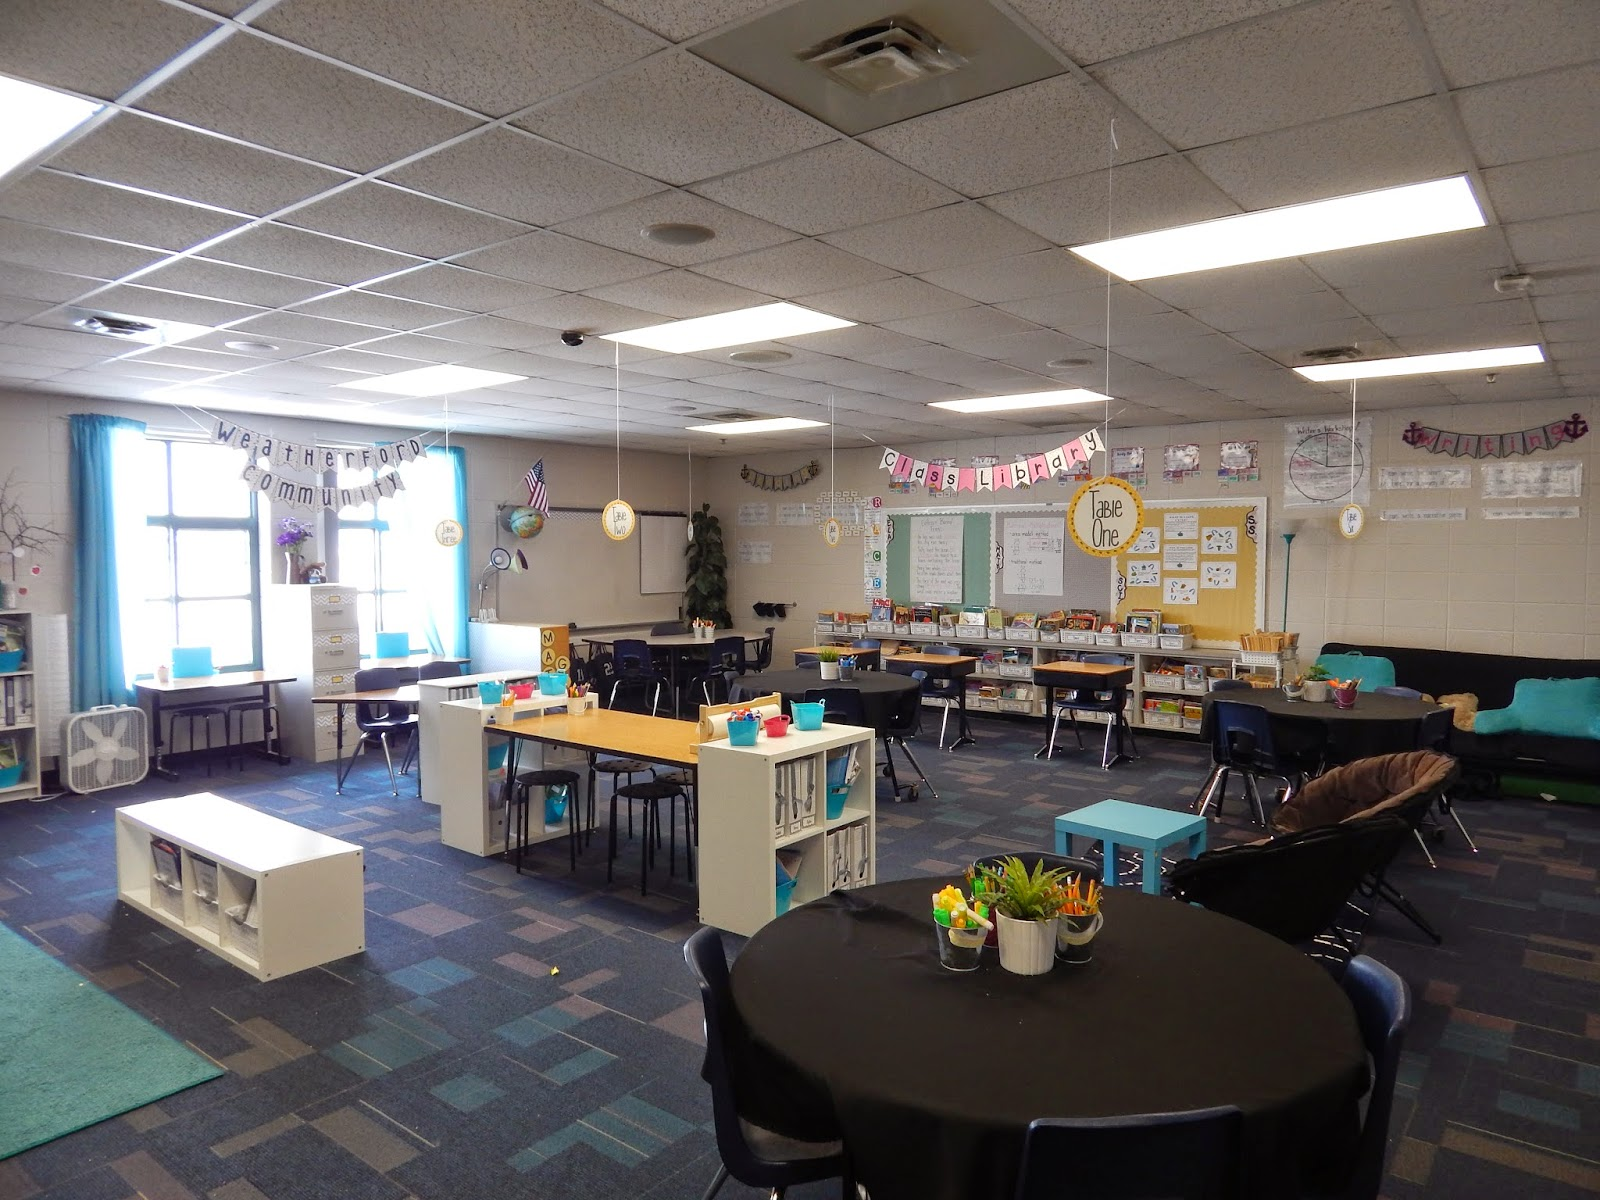 Modern Classroom Facilities ~ New classroom set up encouraging self directed learning